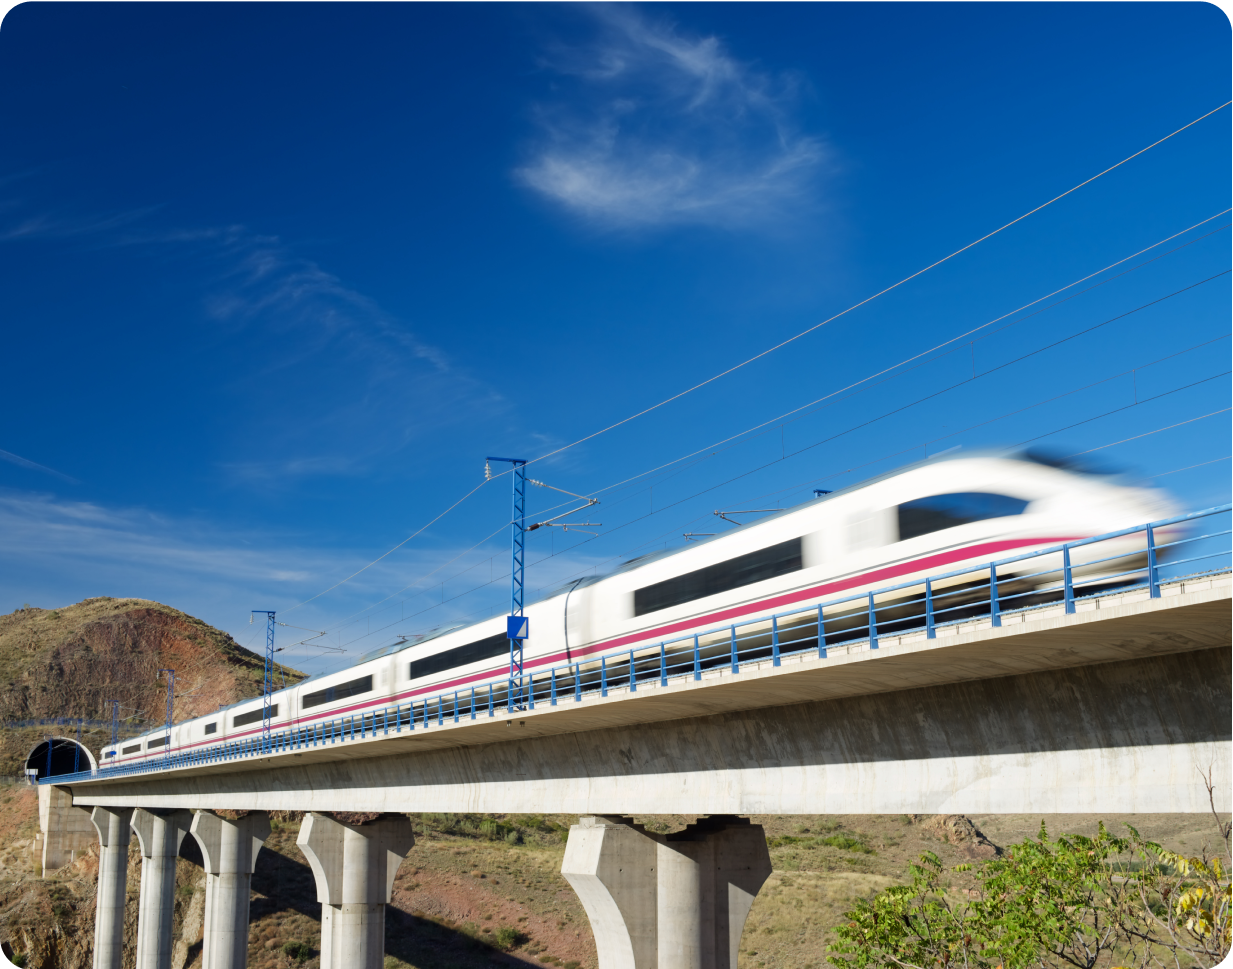 High-speed train entering a tunnel